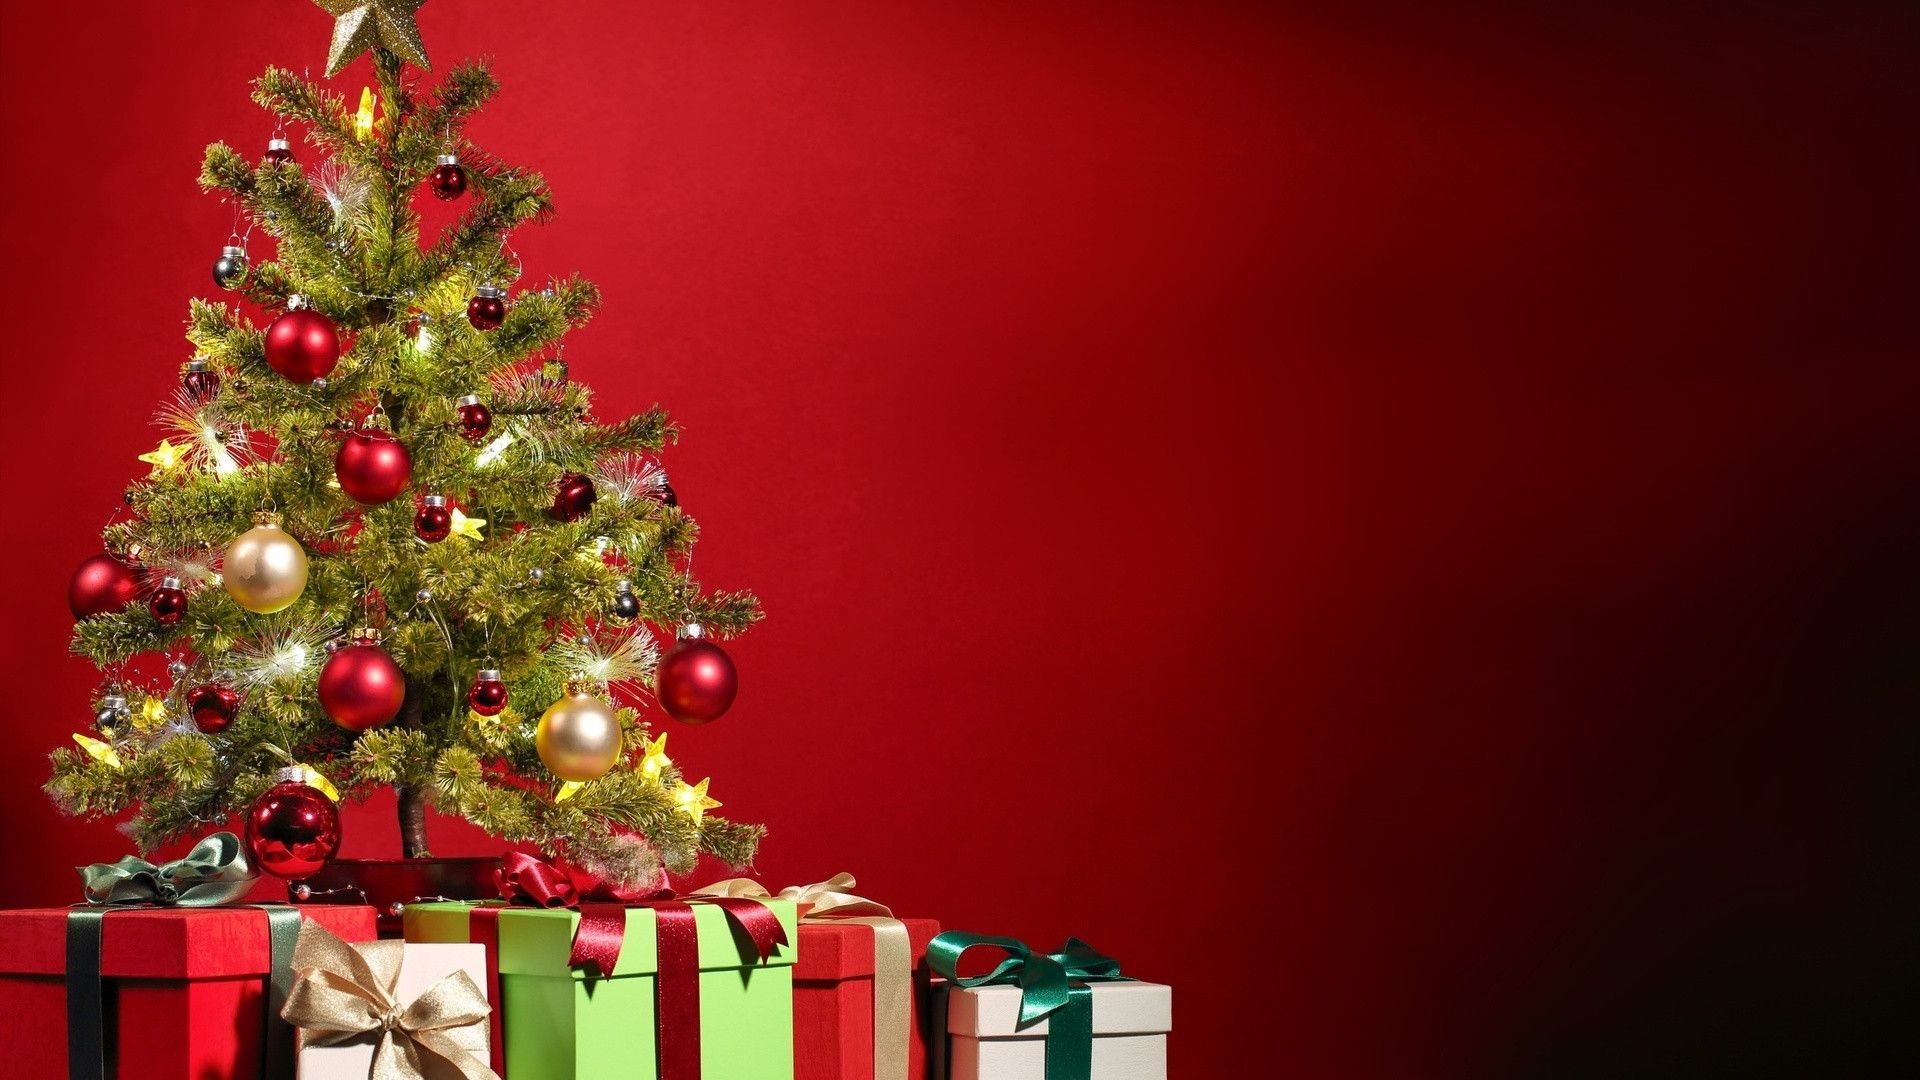 Cute Christmas Tree Backgrounds (04)